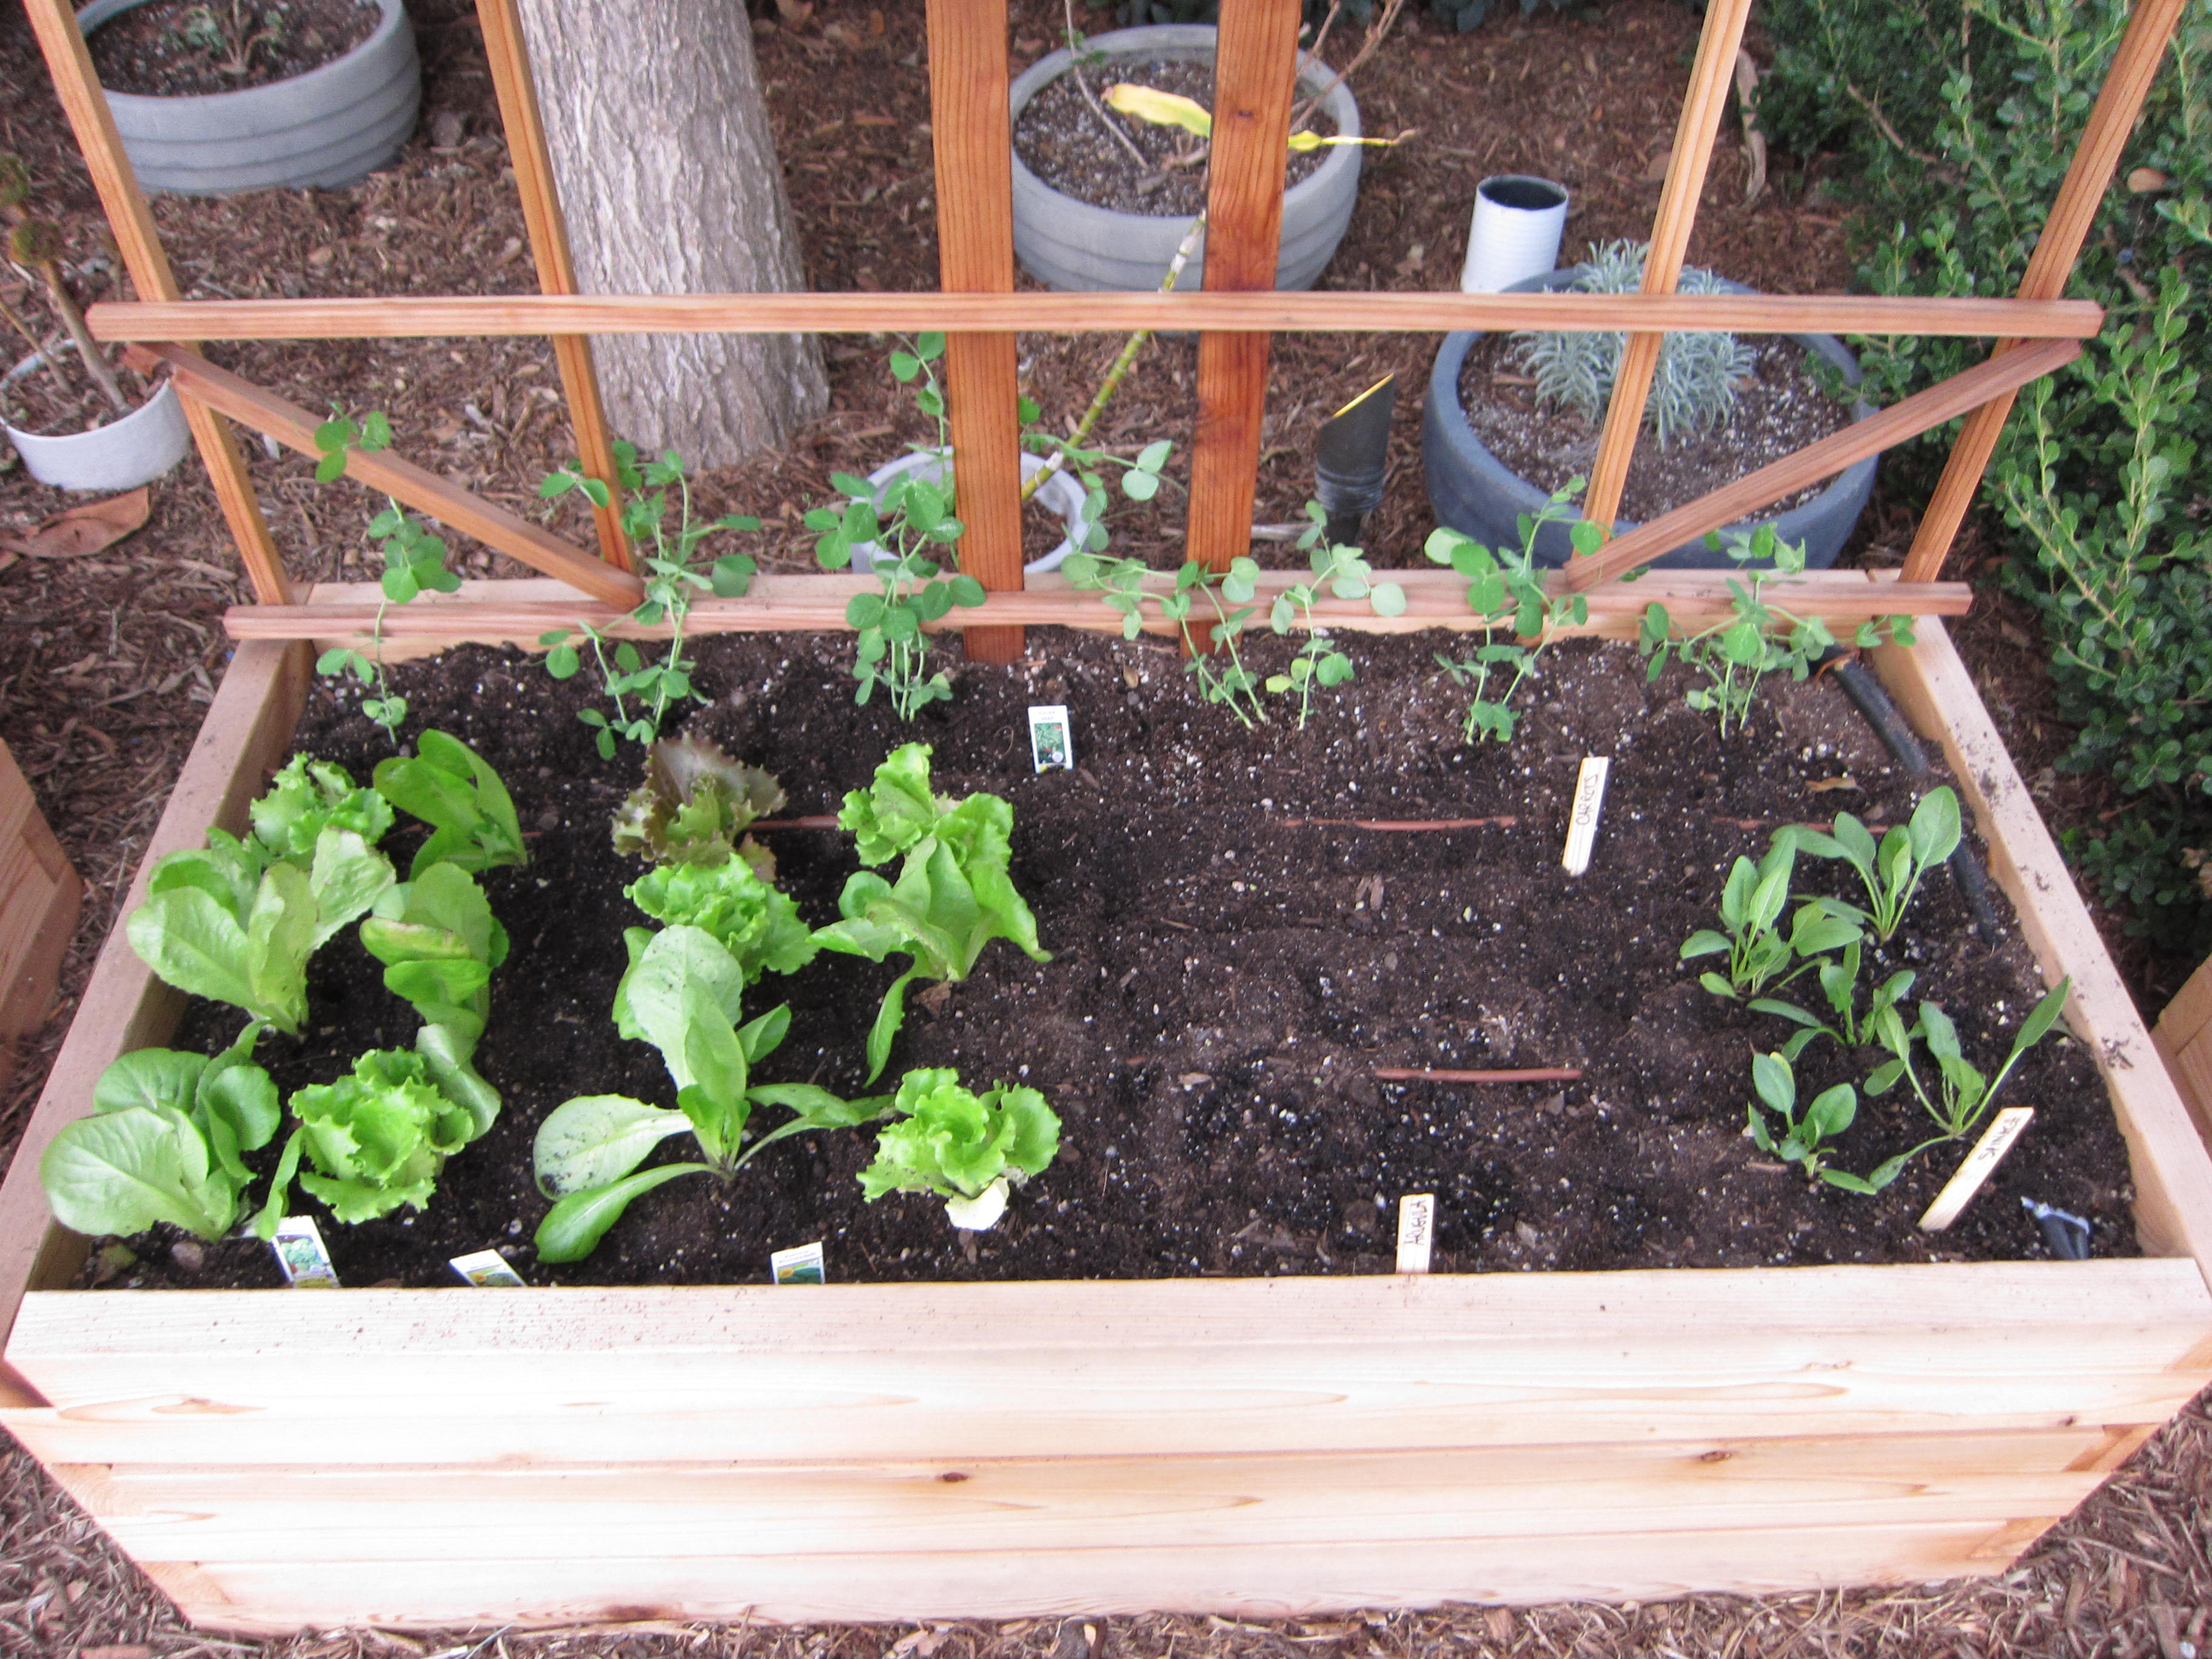 Lettuces, peas, spinach, carrots and arugula populate the next bed.